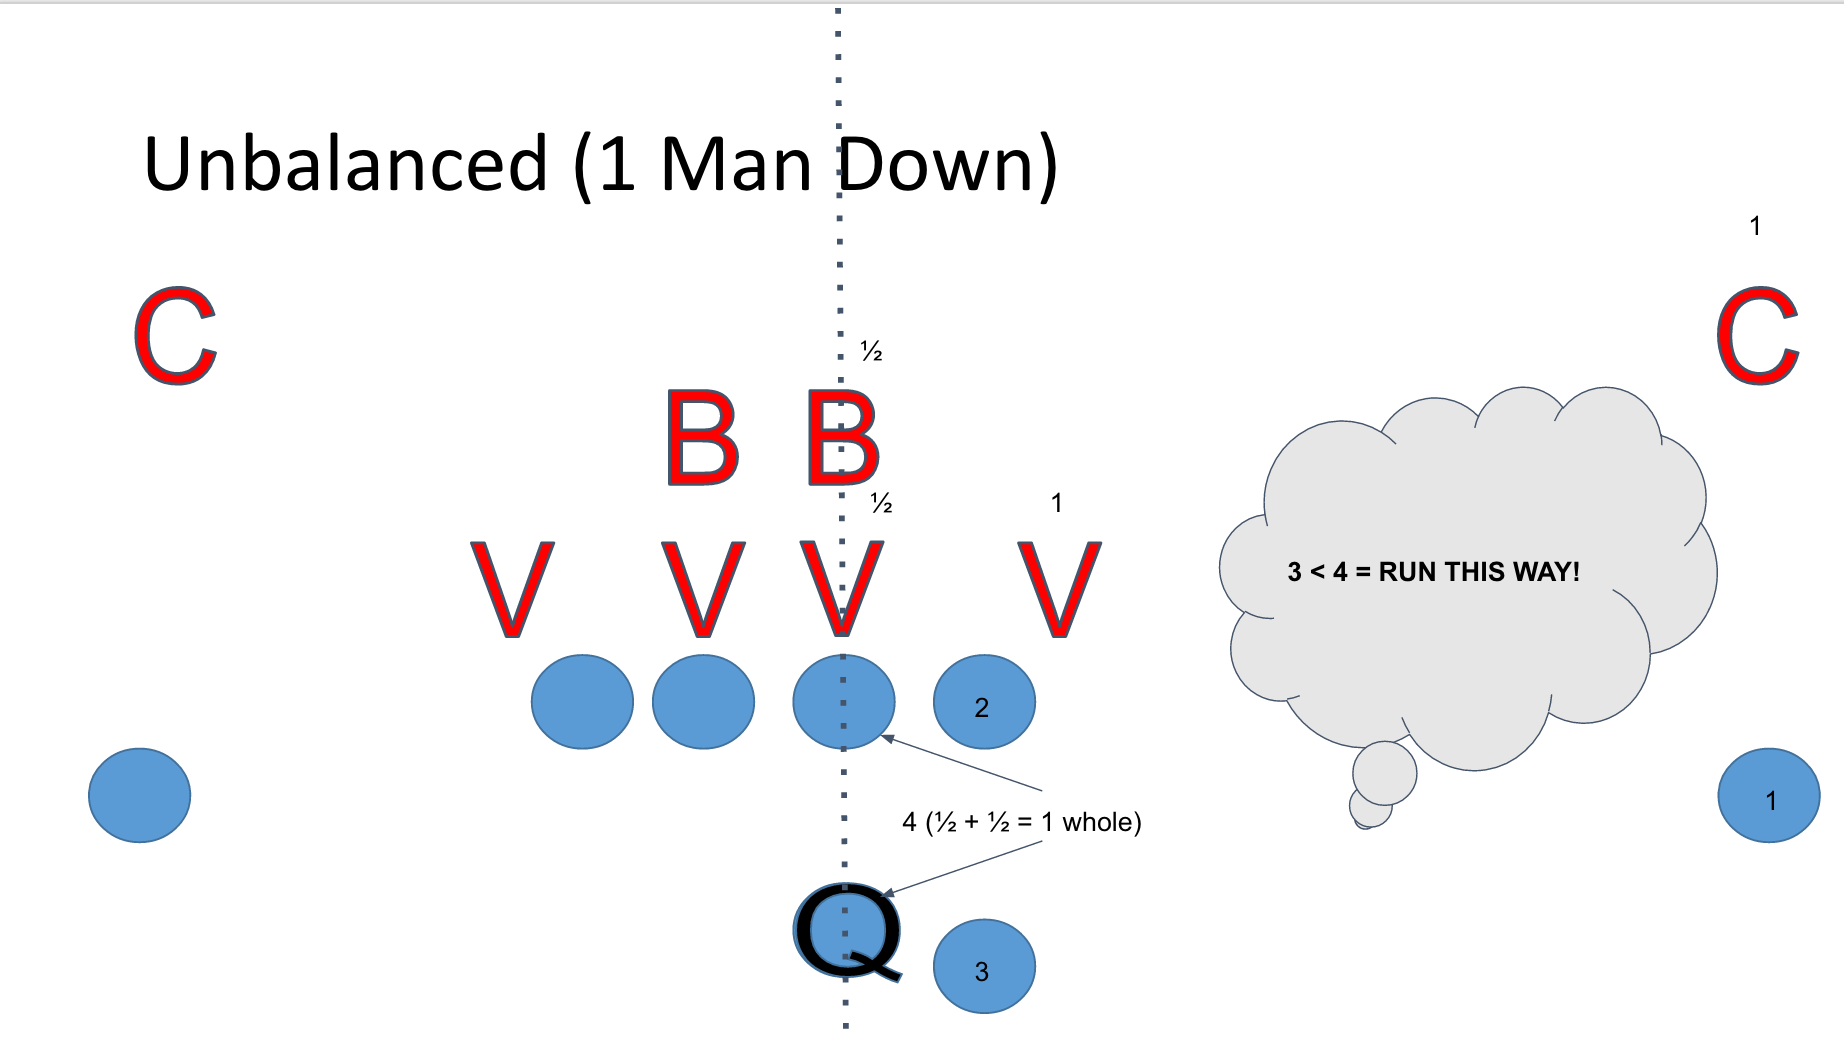 Unbalanced 8 man offensive formation